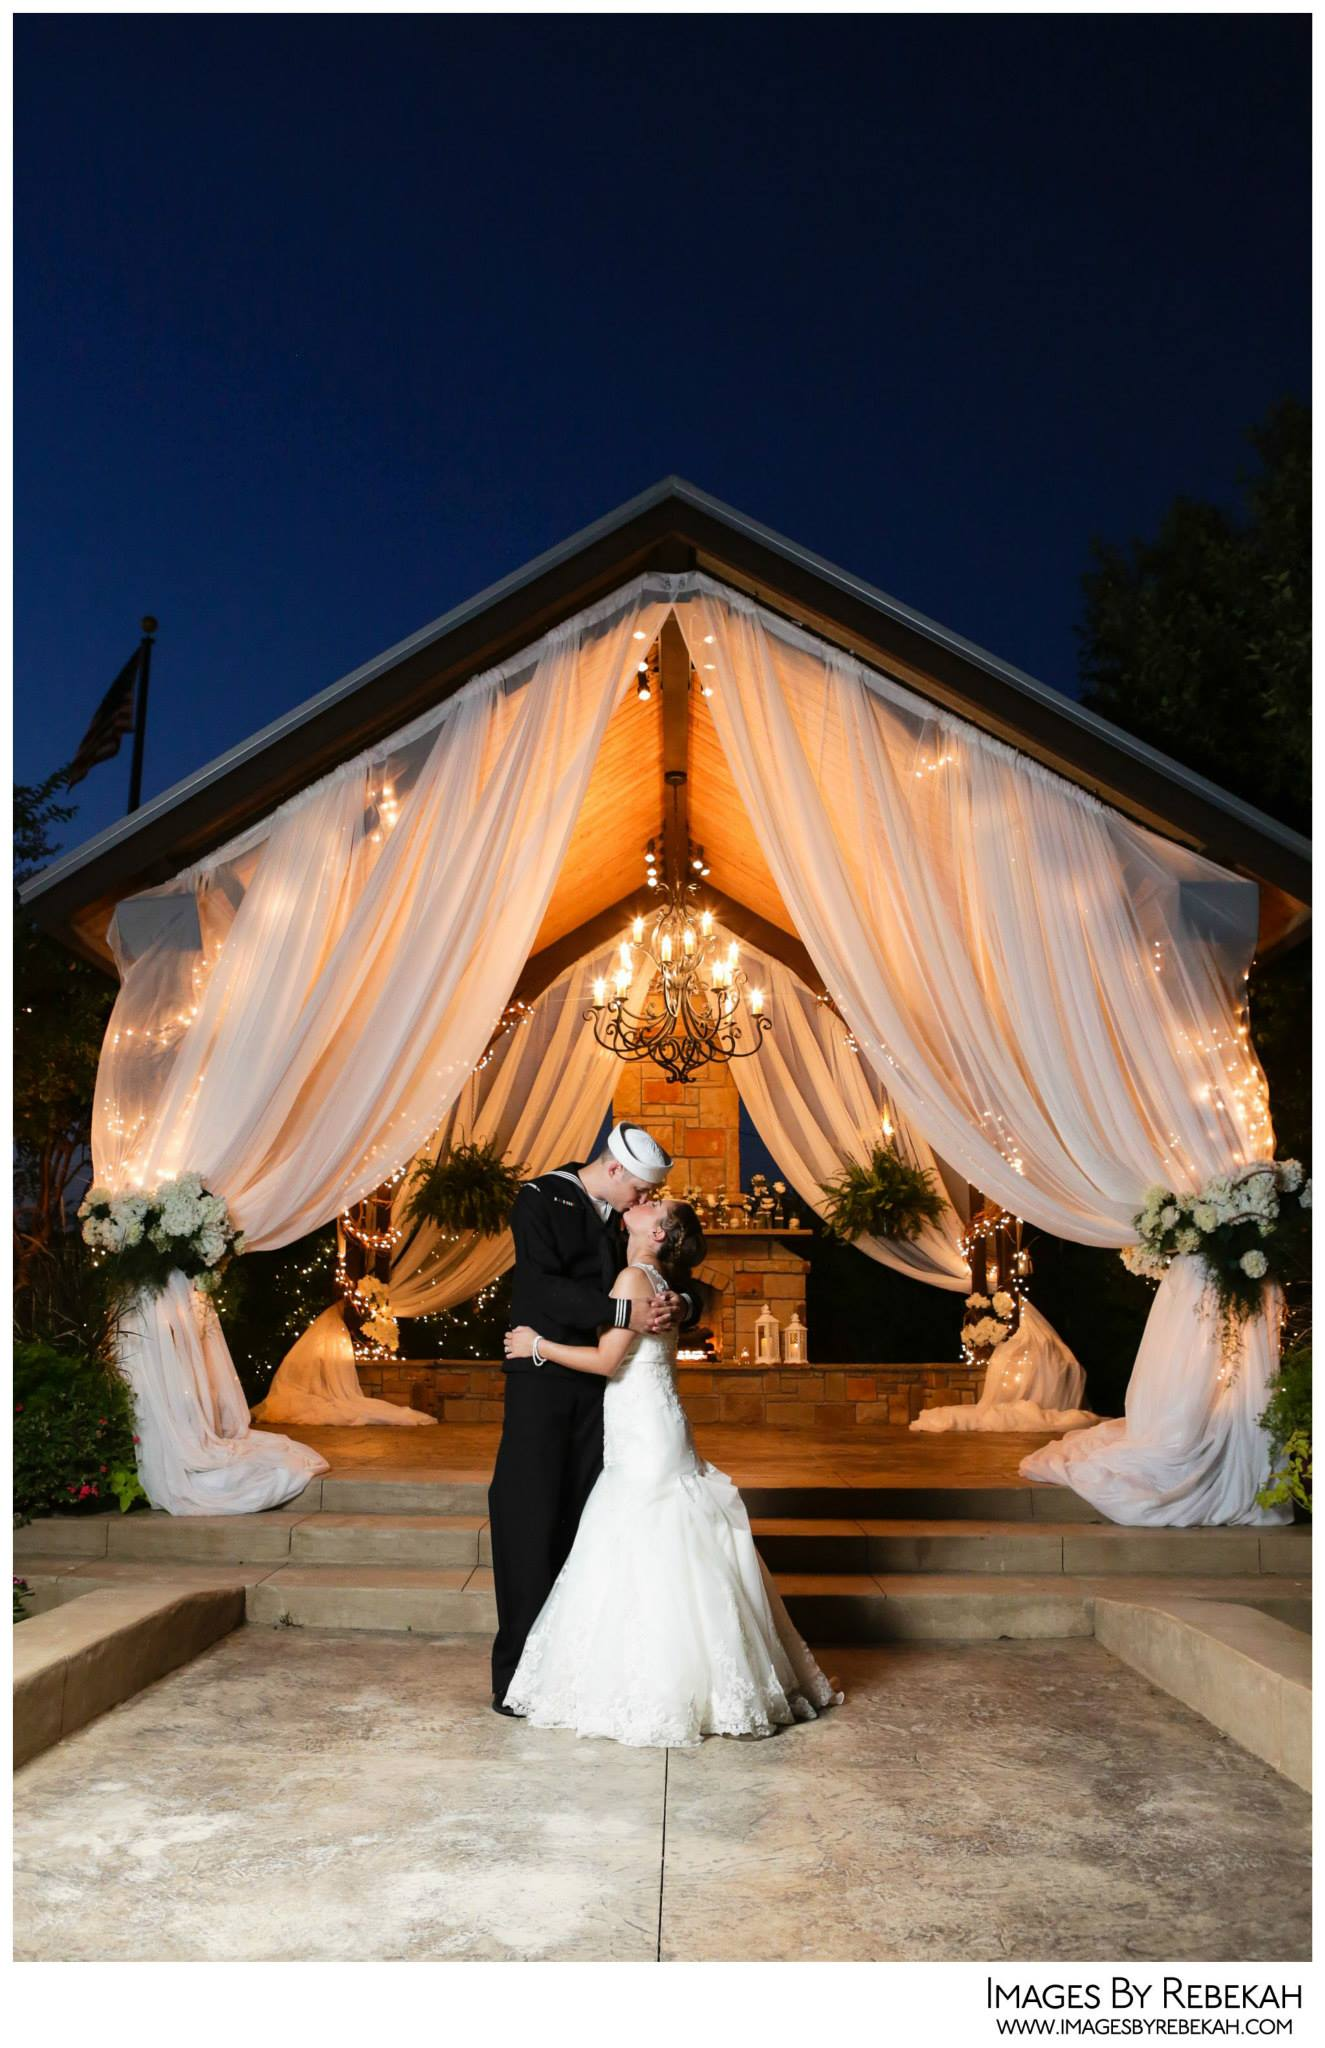 DFW Drape Lighting/Draping Dallas